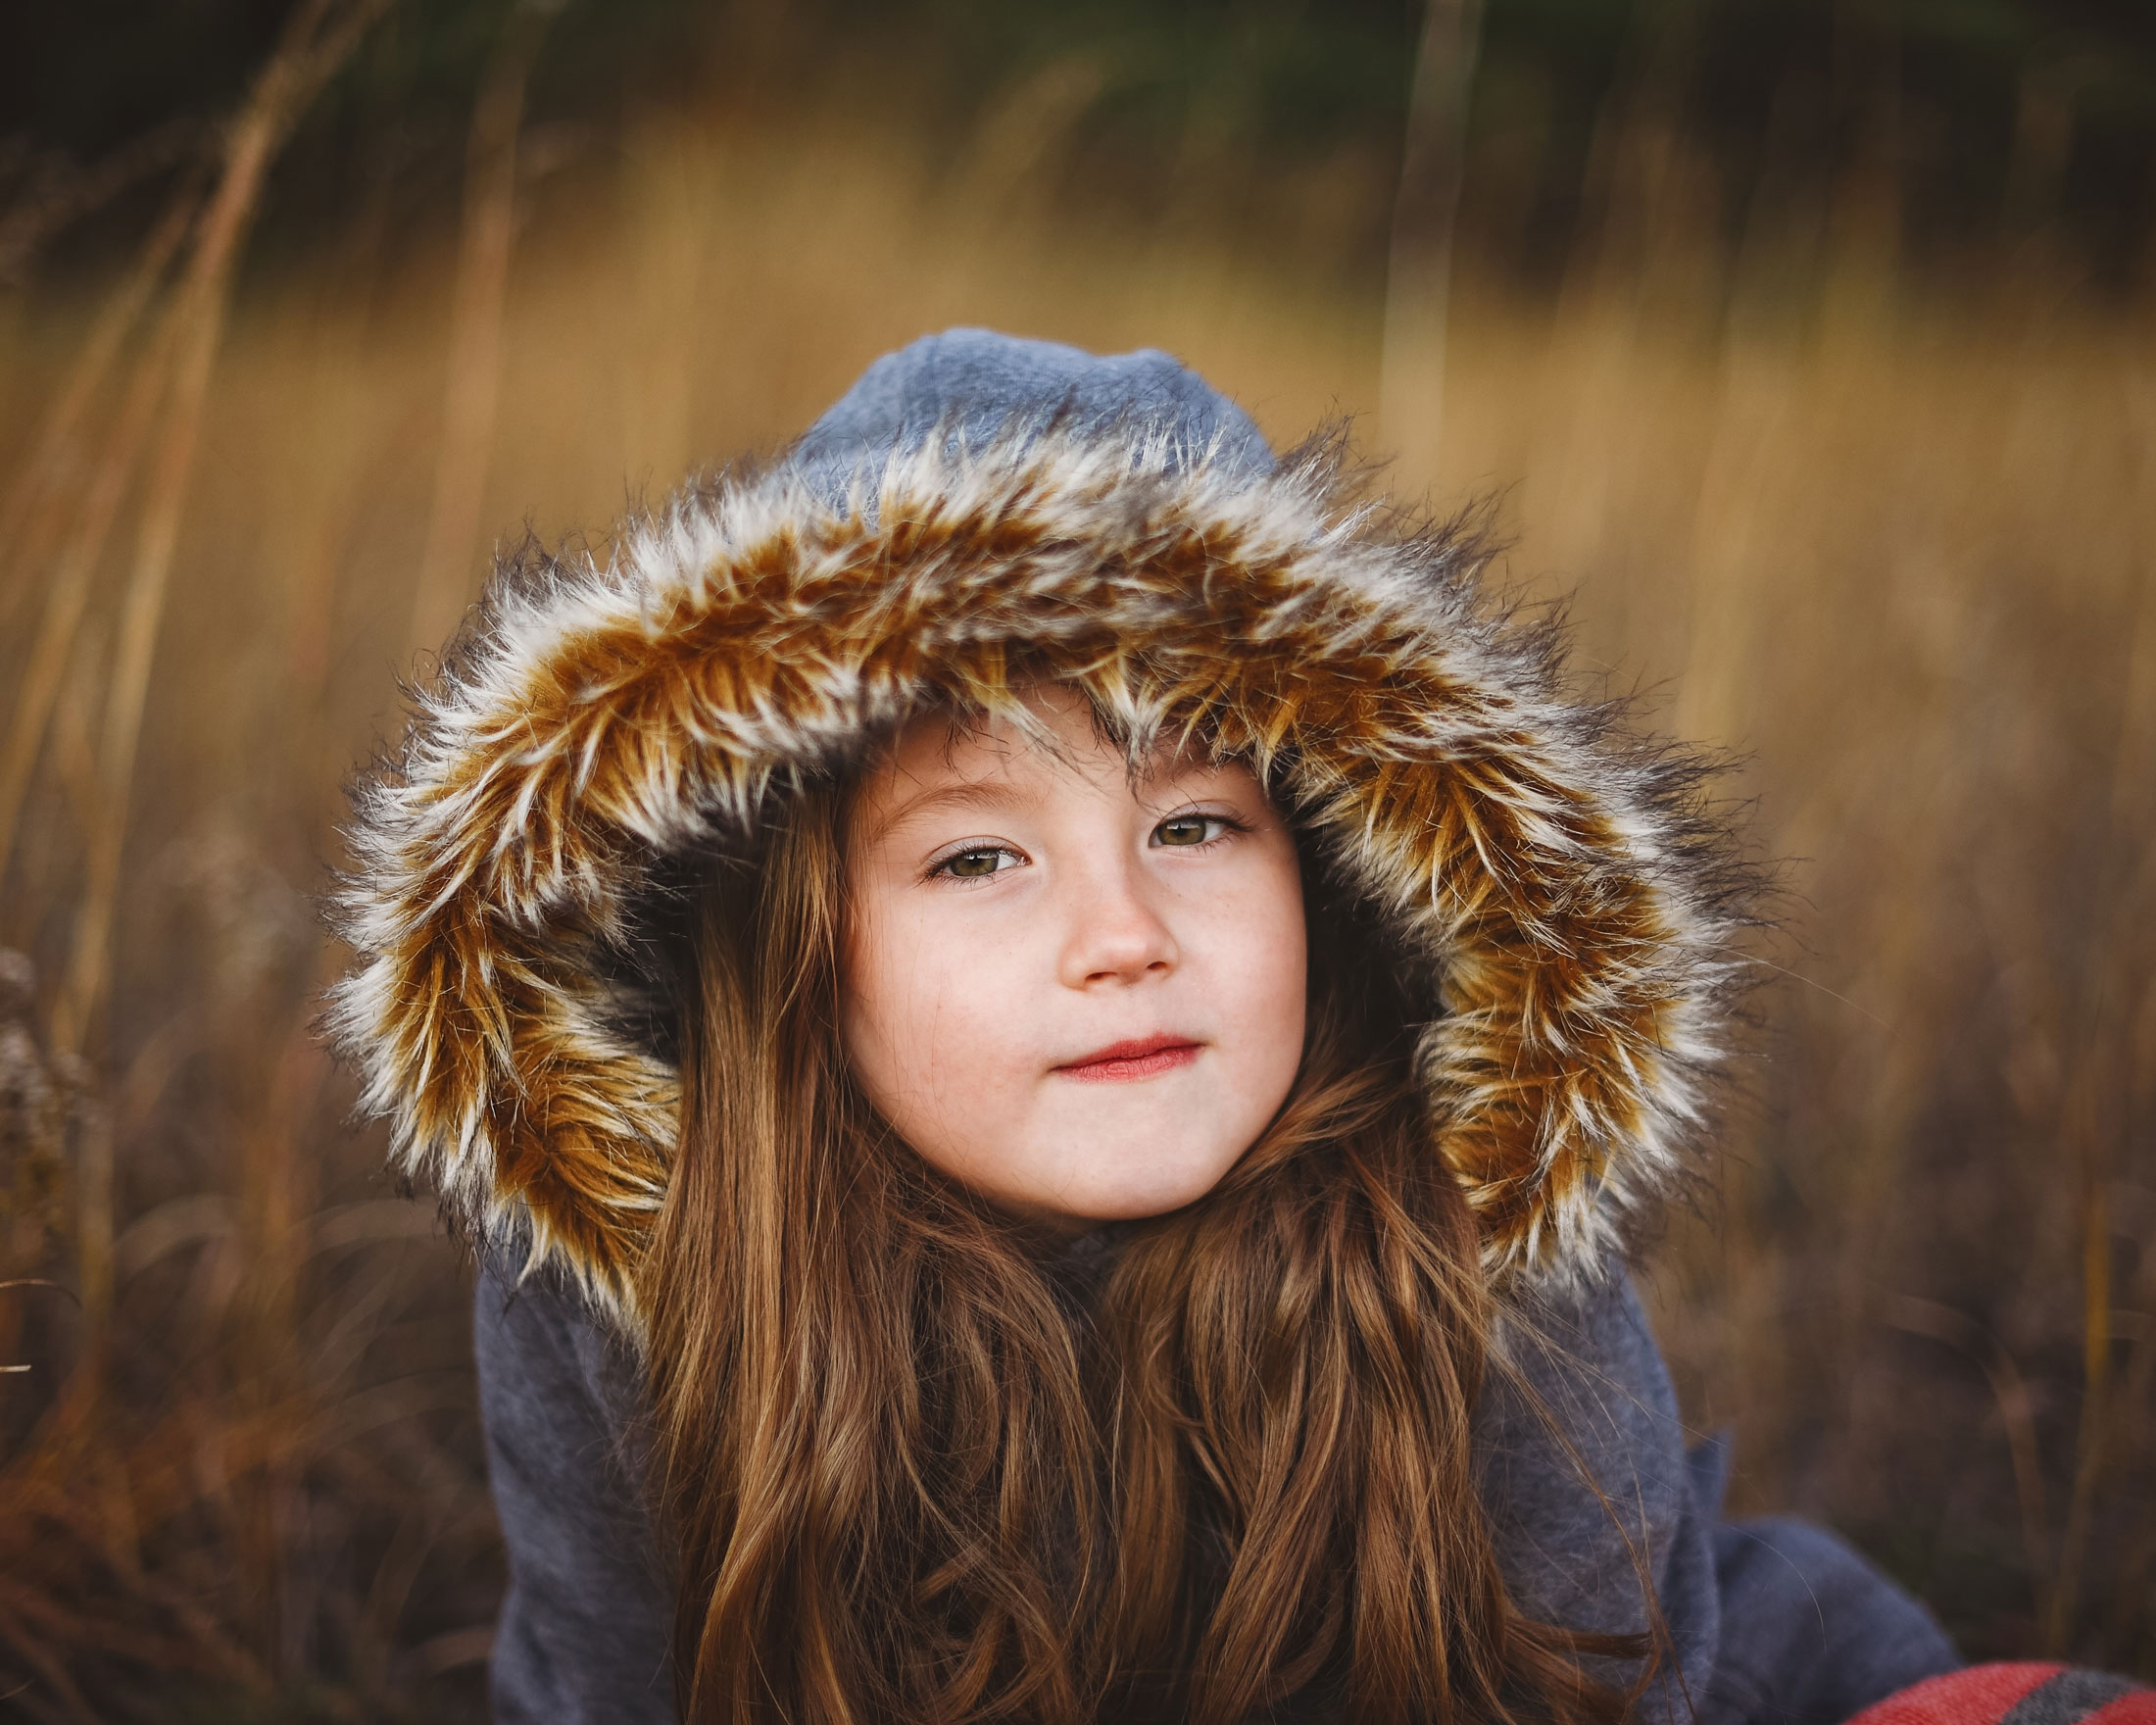 Kids-Photography-MA-ChasetheGlowPhotography_2019.jpg